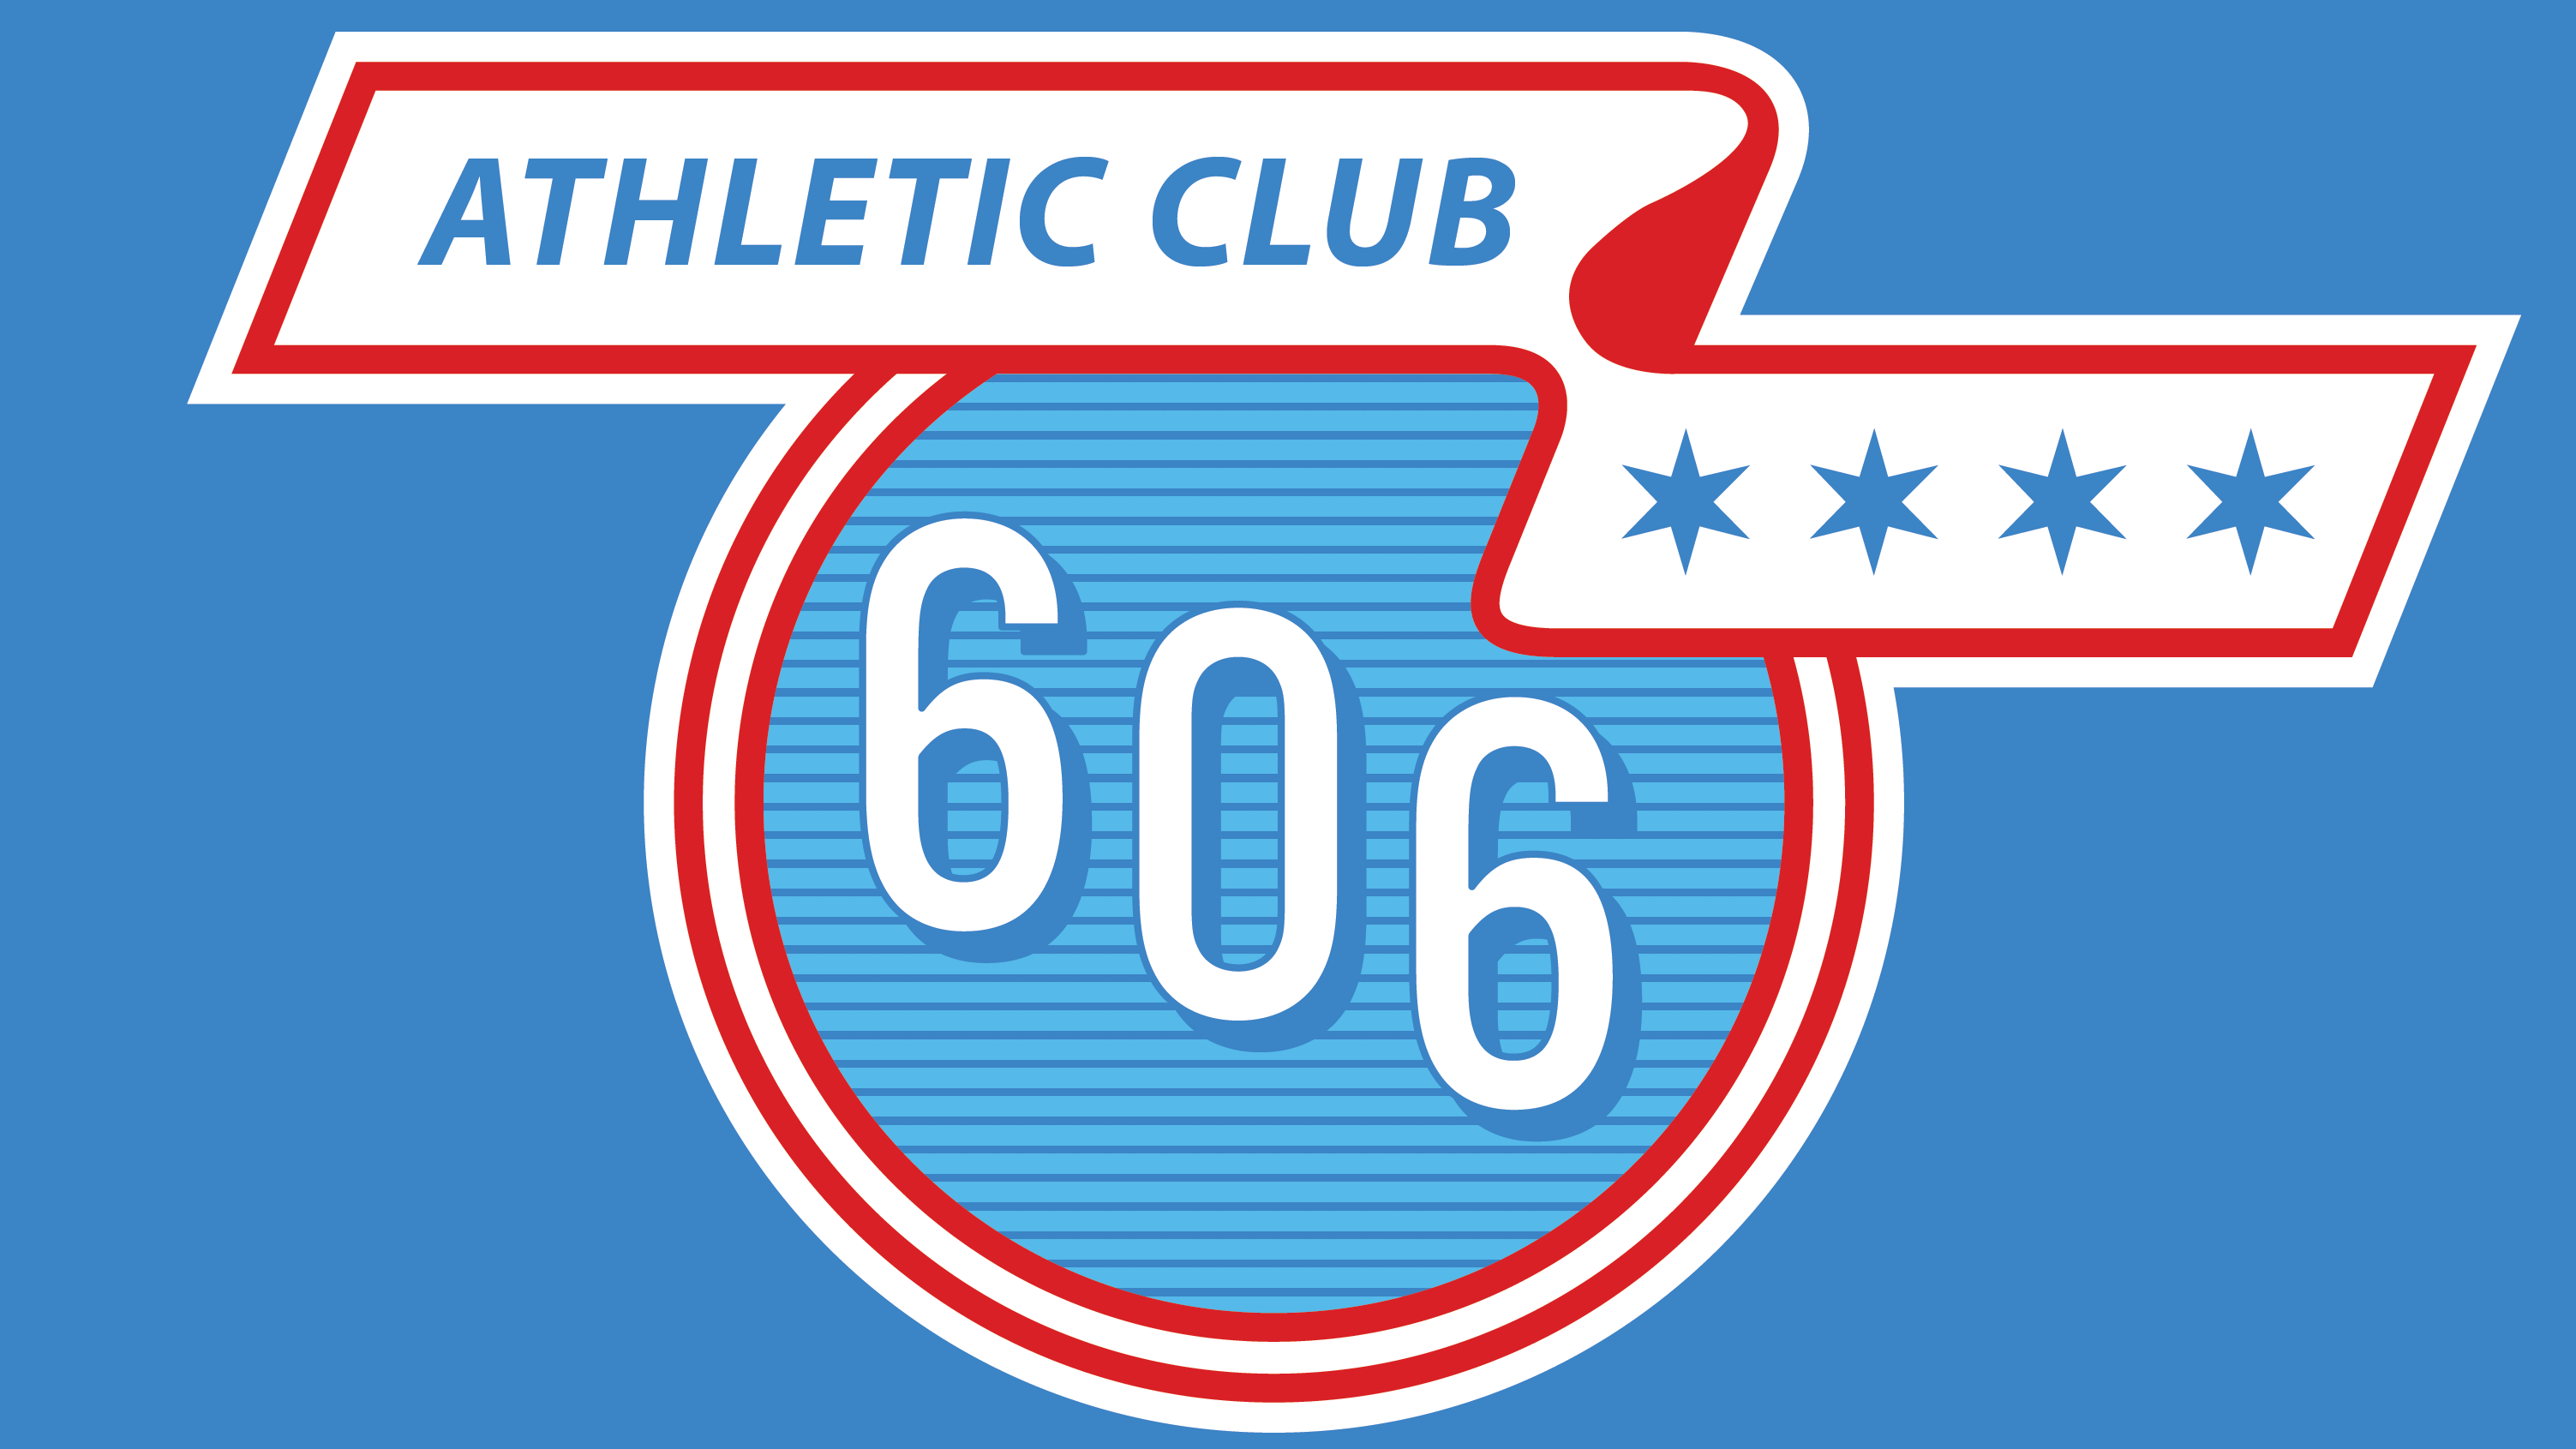 606 Athletic Club